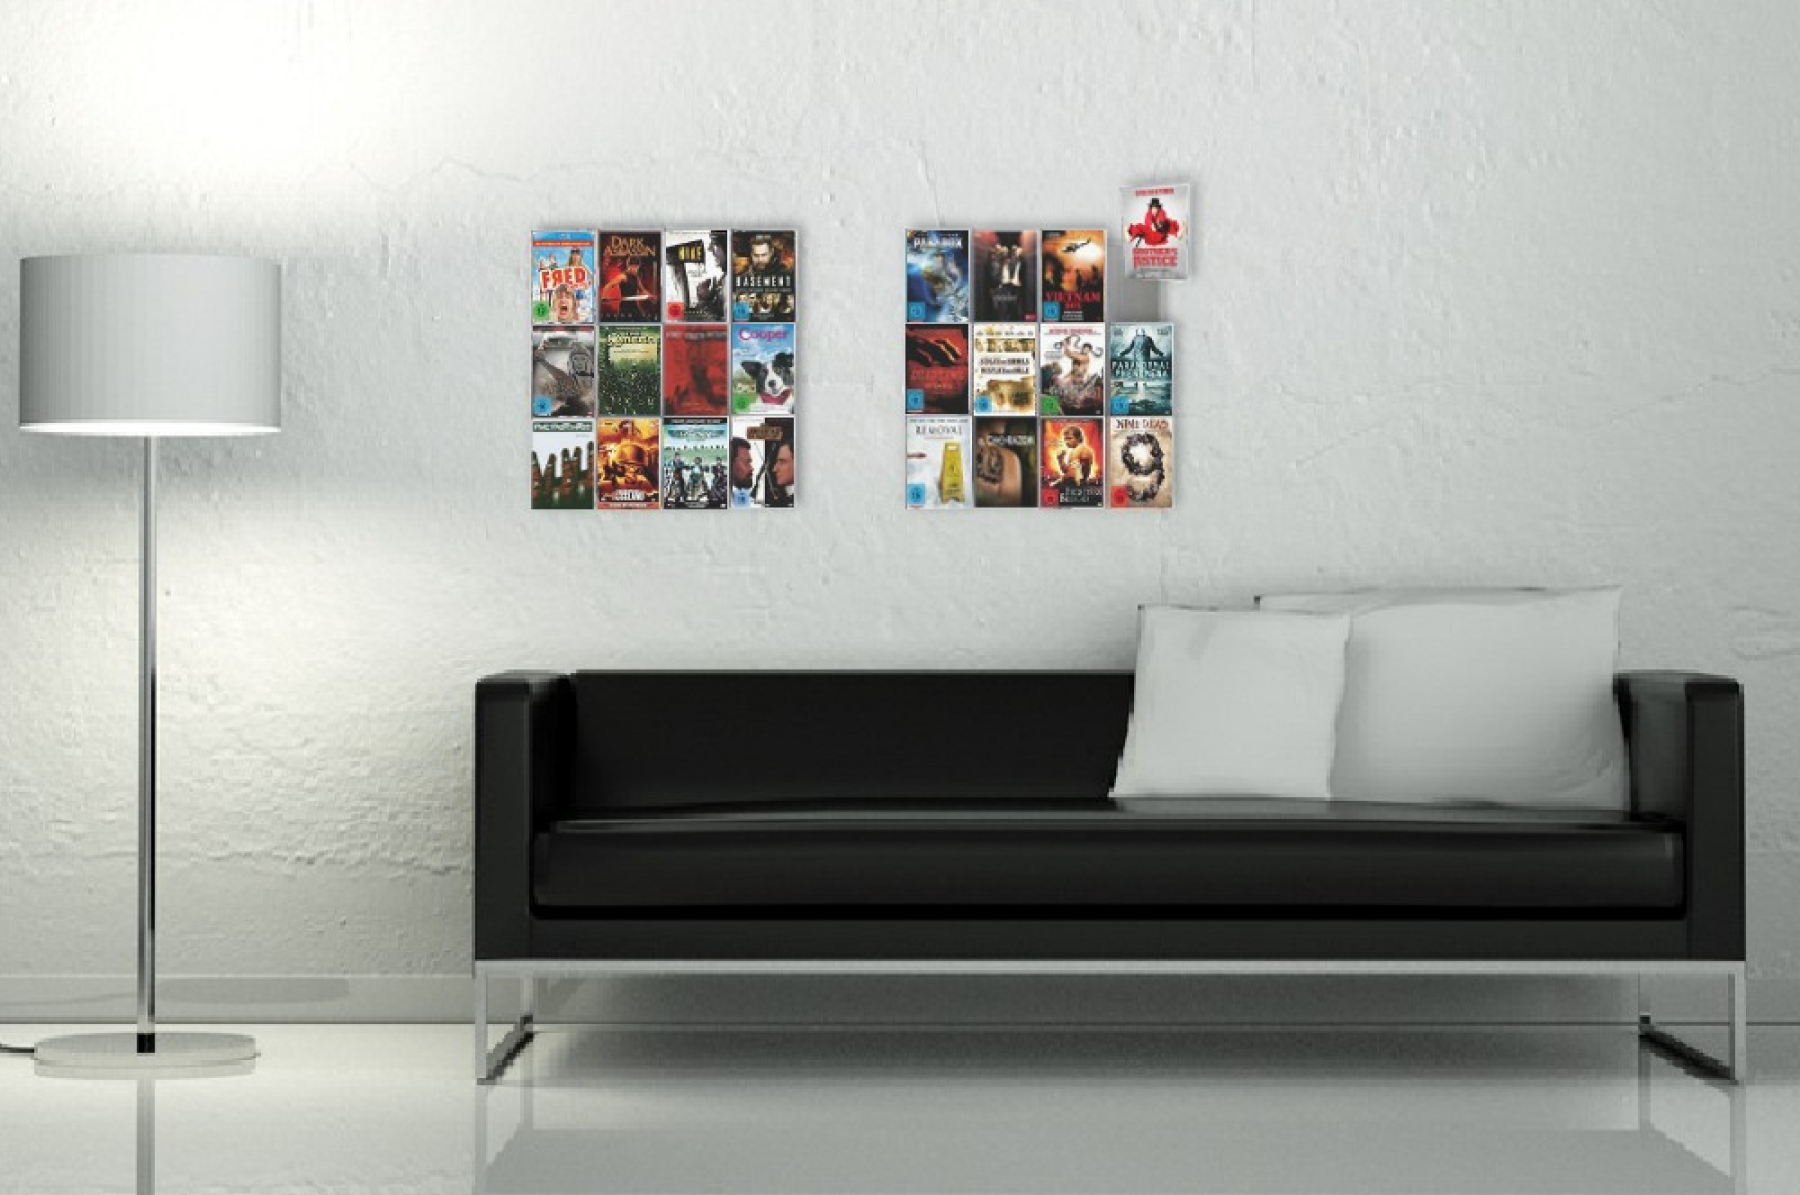 The picture shows two DVD Wall4x3 placed side by side